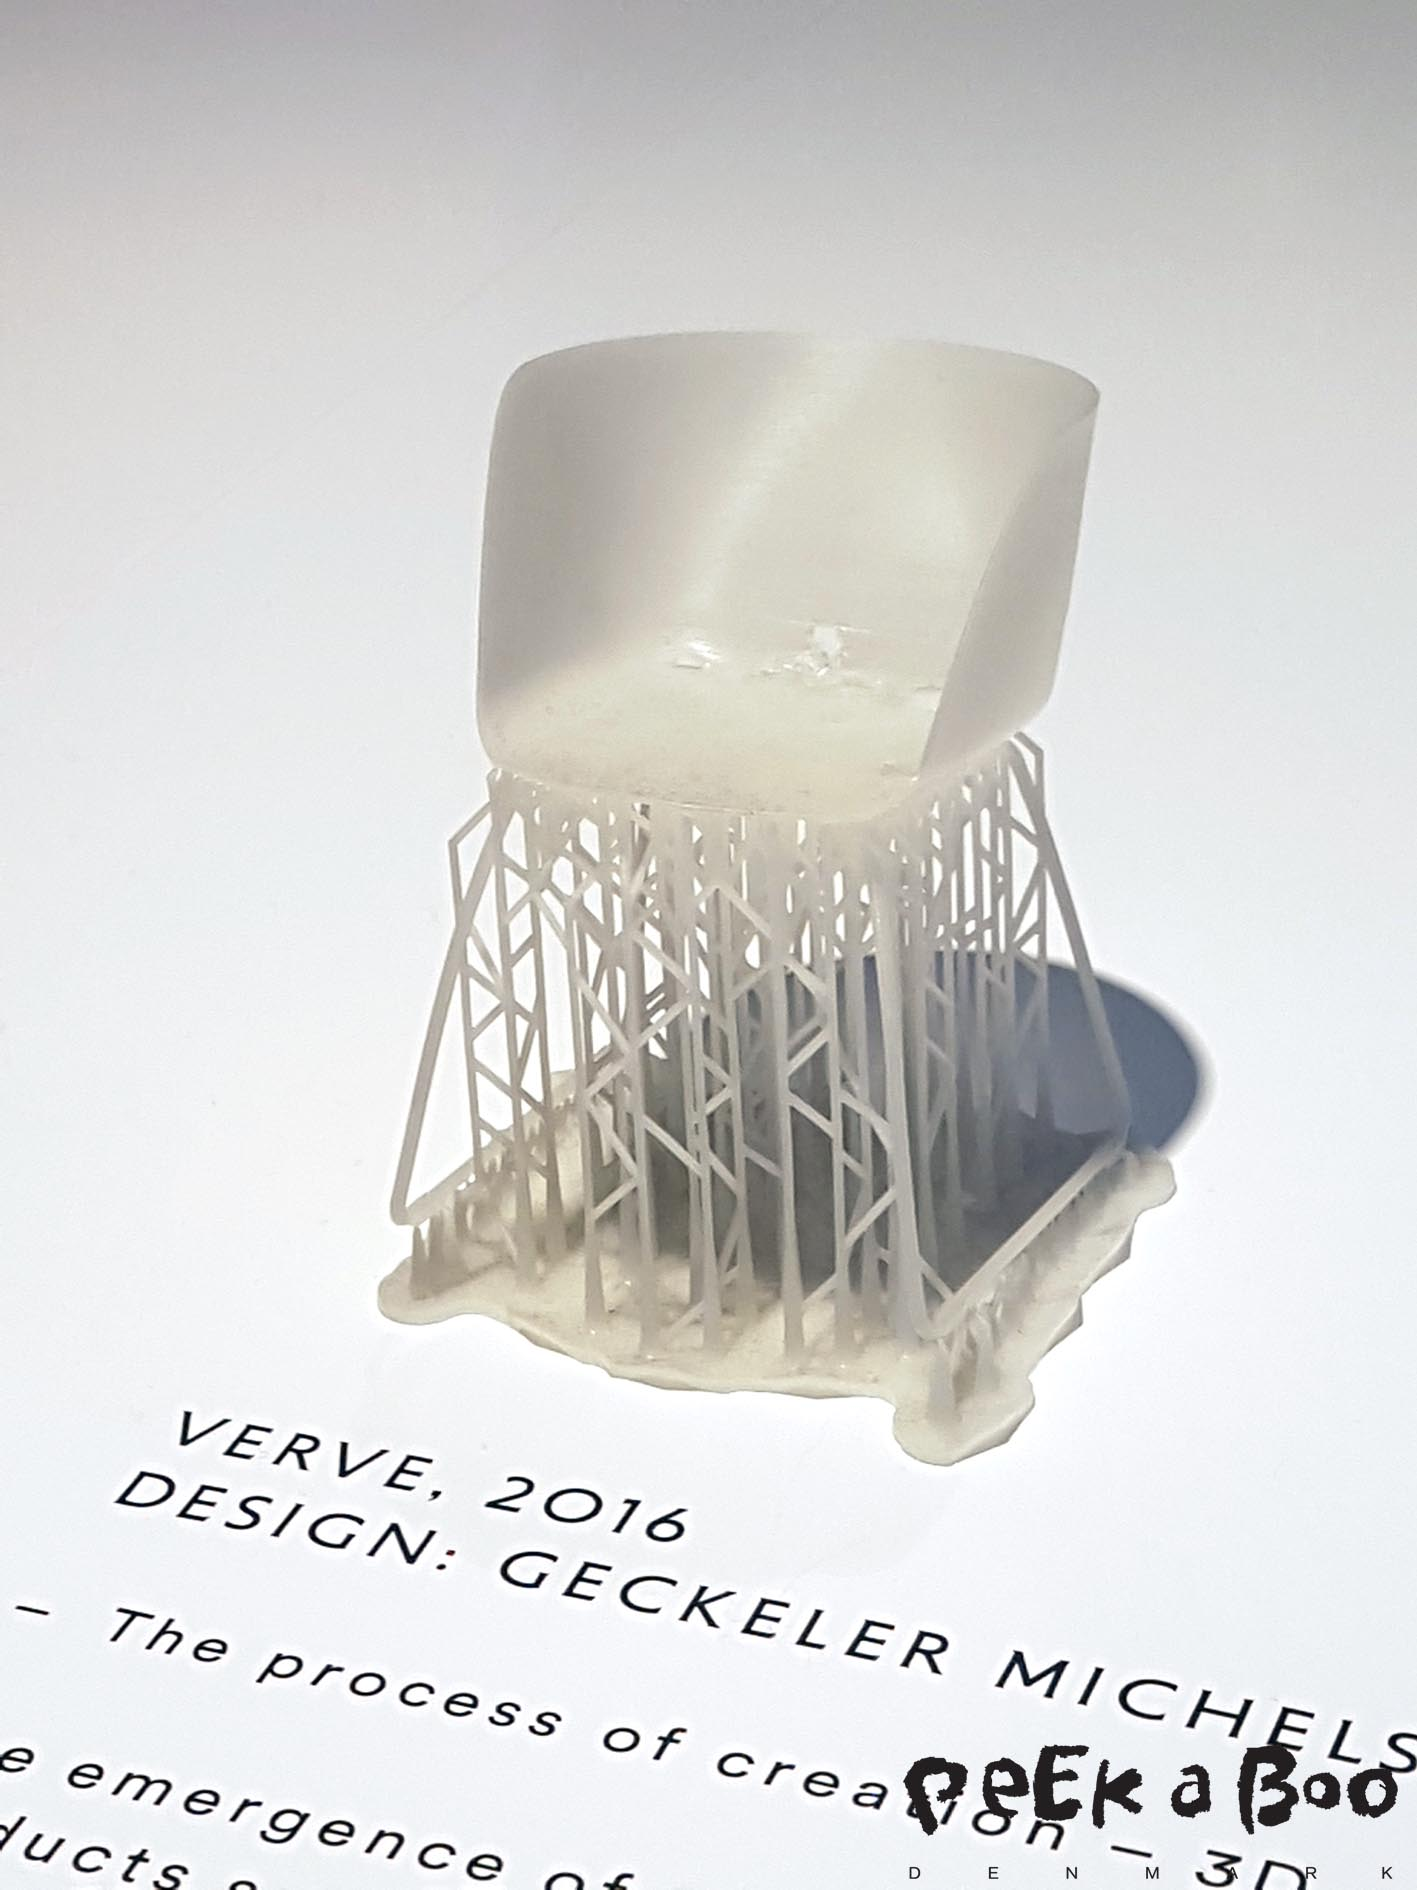 3 D printed model of the VERVE chair. The emergence of 3 D printning techno has eased the initial prototyping of products such as polypropylene shell chair, whihch require heavy investments in moulds and tool.